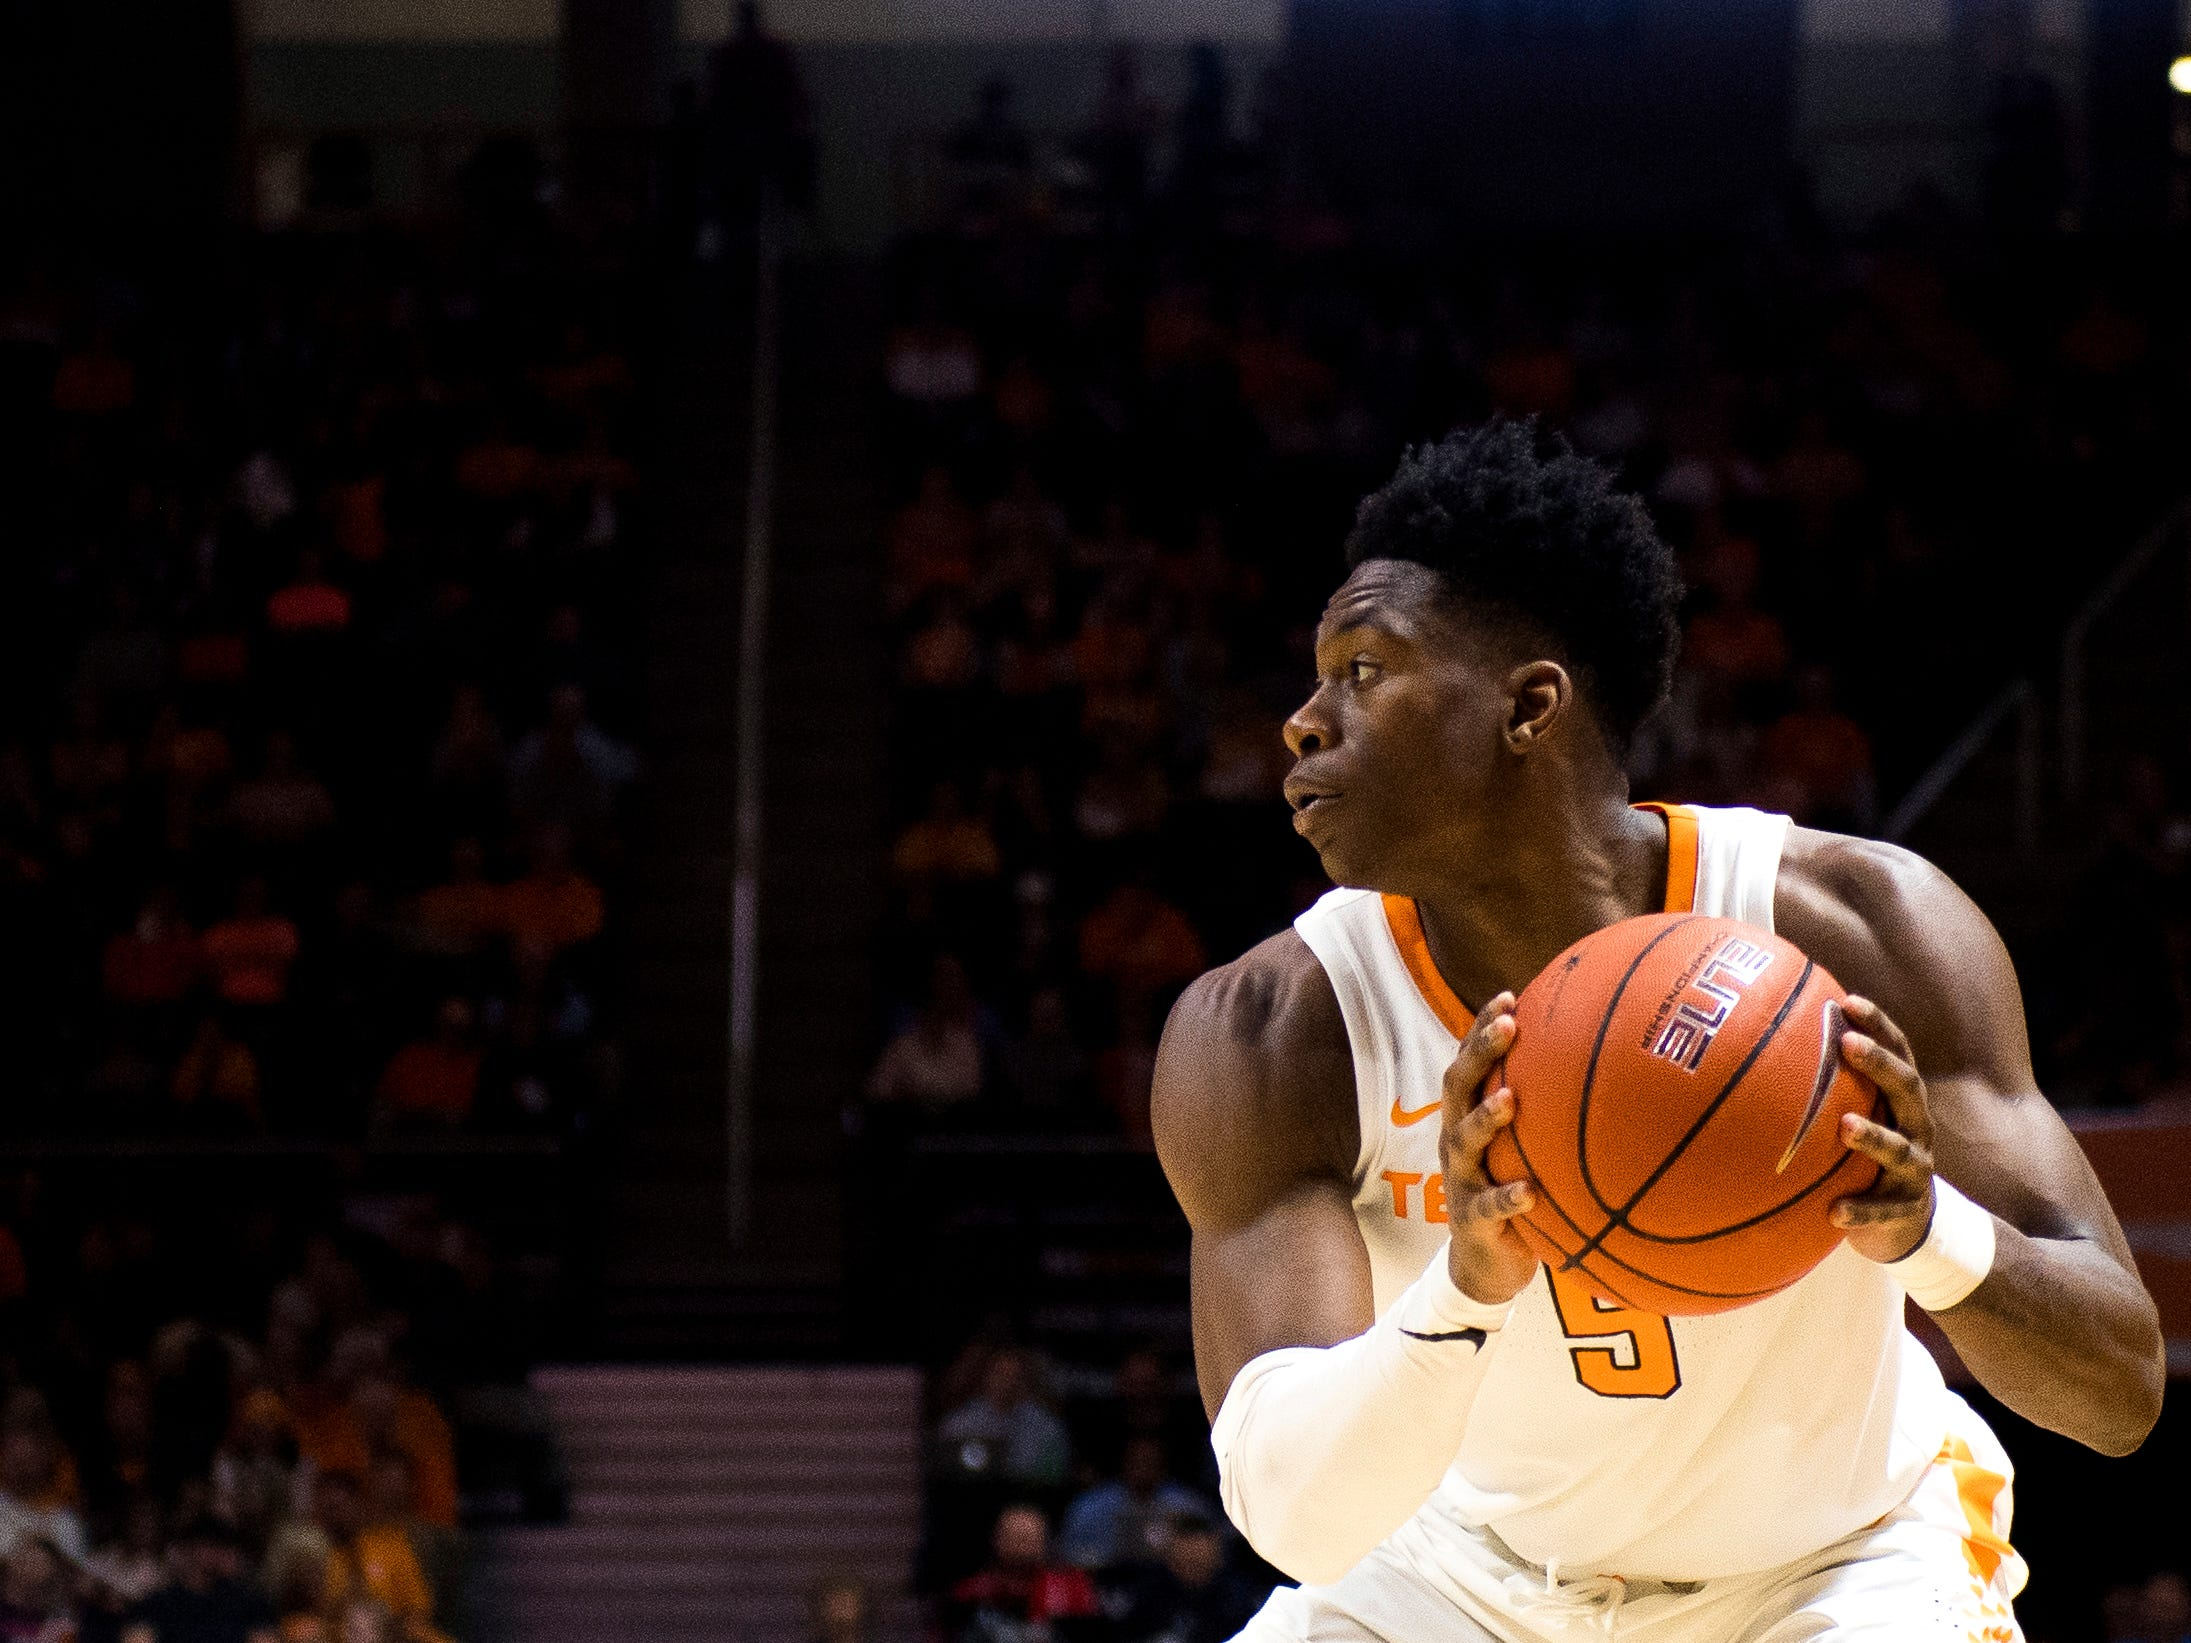 Tennessee guard Admiral Schofield (5) looks for an open teammate during the second half of the Tennessee Volunteers' home basketball game against the Texas A&M-Corpus Christi Islanders at Thompson-Boling Arena on Sunday, December 2, 2018.